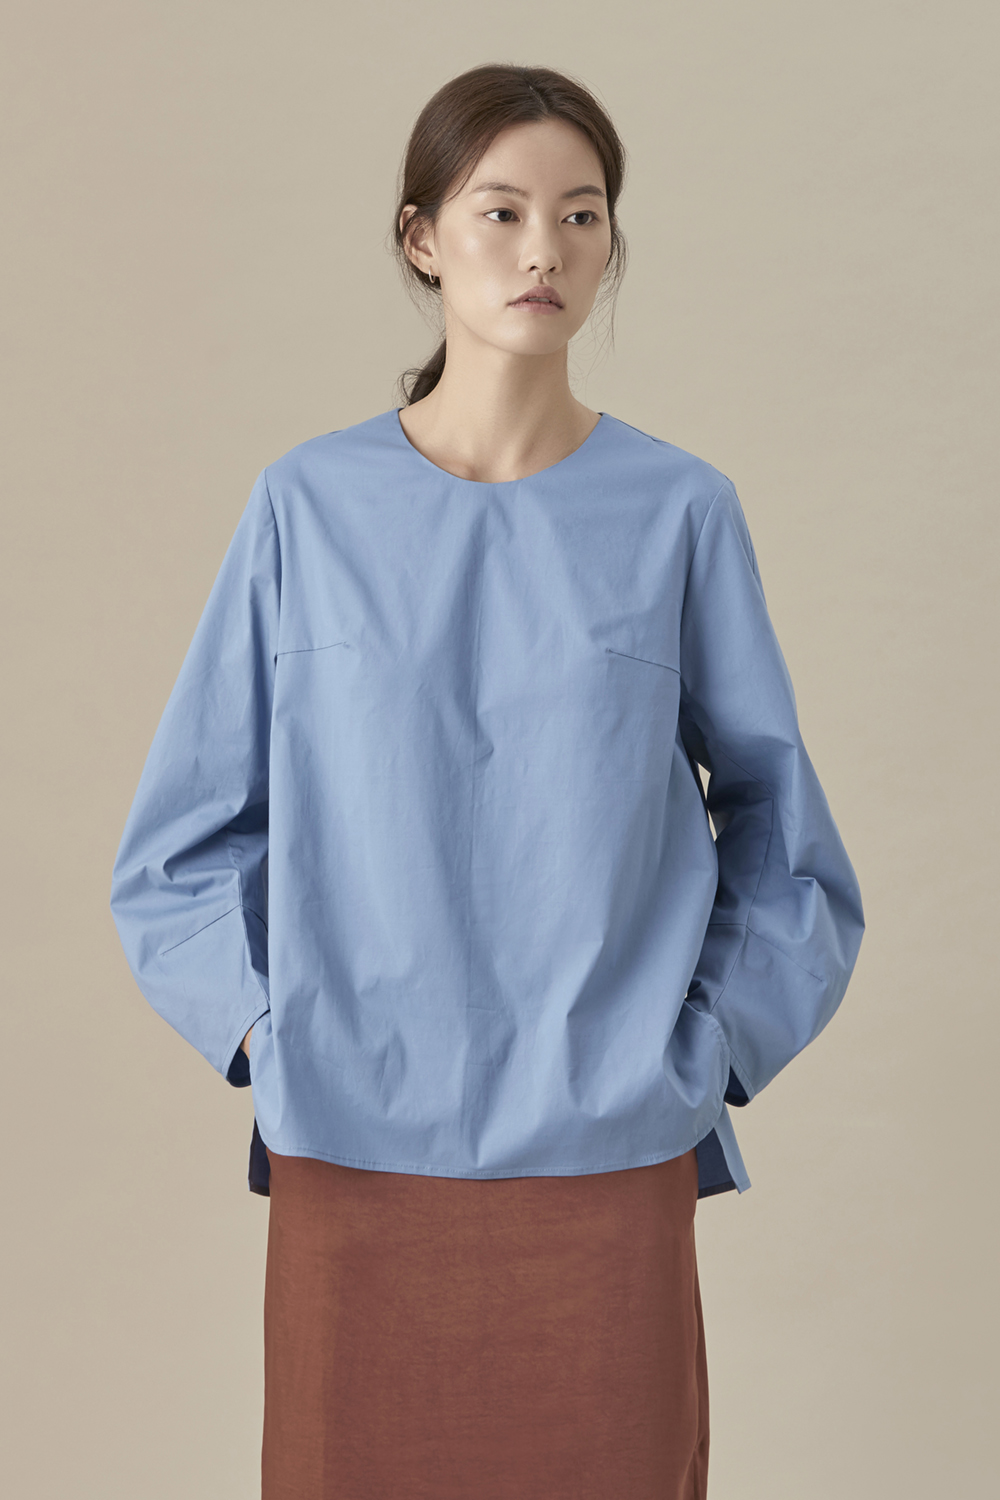 Round Cotton Volume Blouse